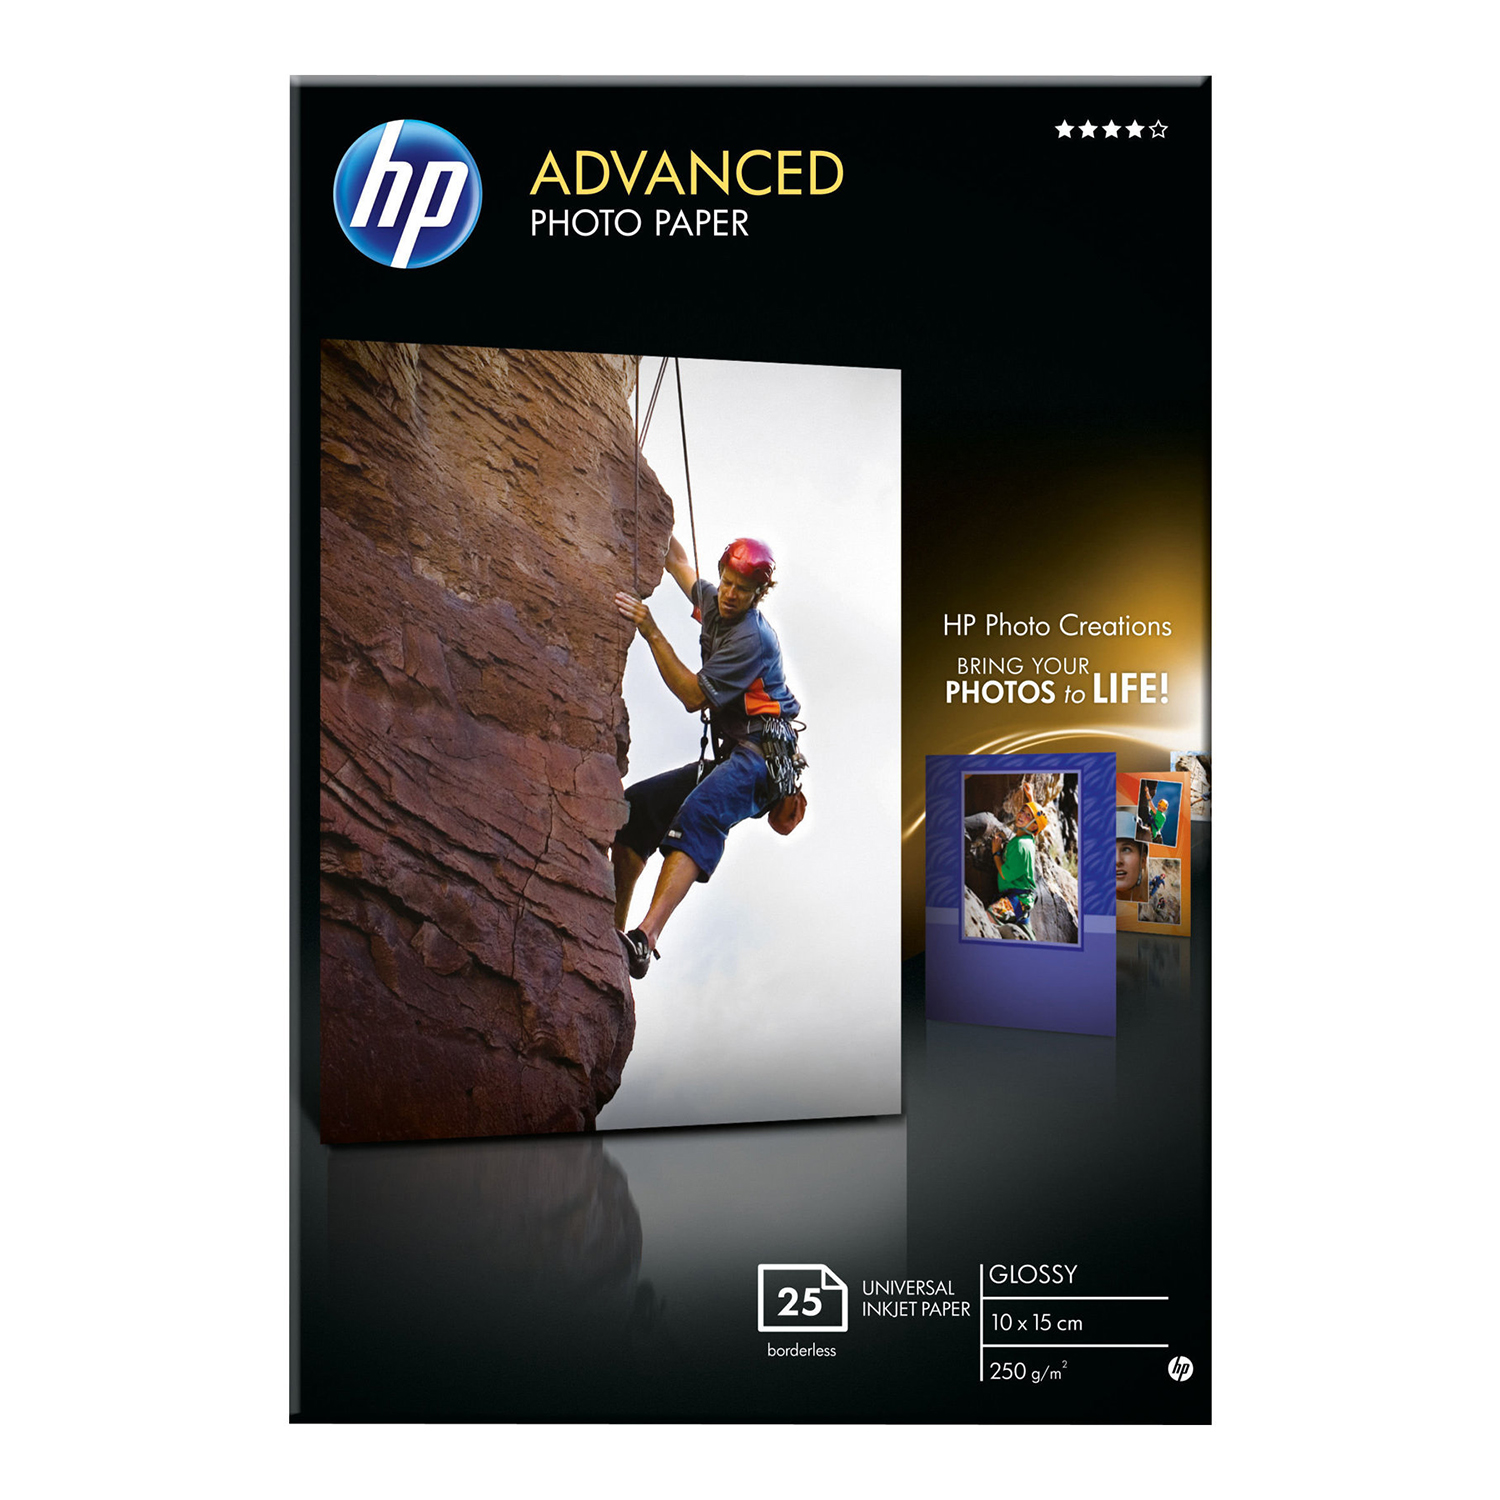 Hewlett Packard Advanced Glossy Photo Paper 10x15cm 250gsm Ref Q8691A [25 Sheets]